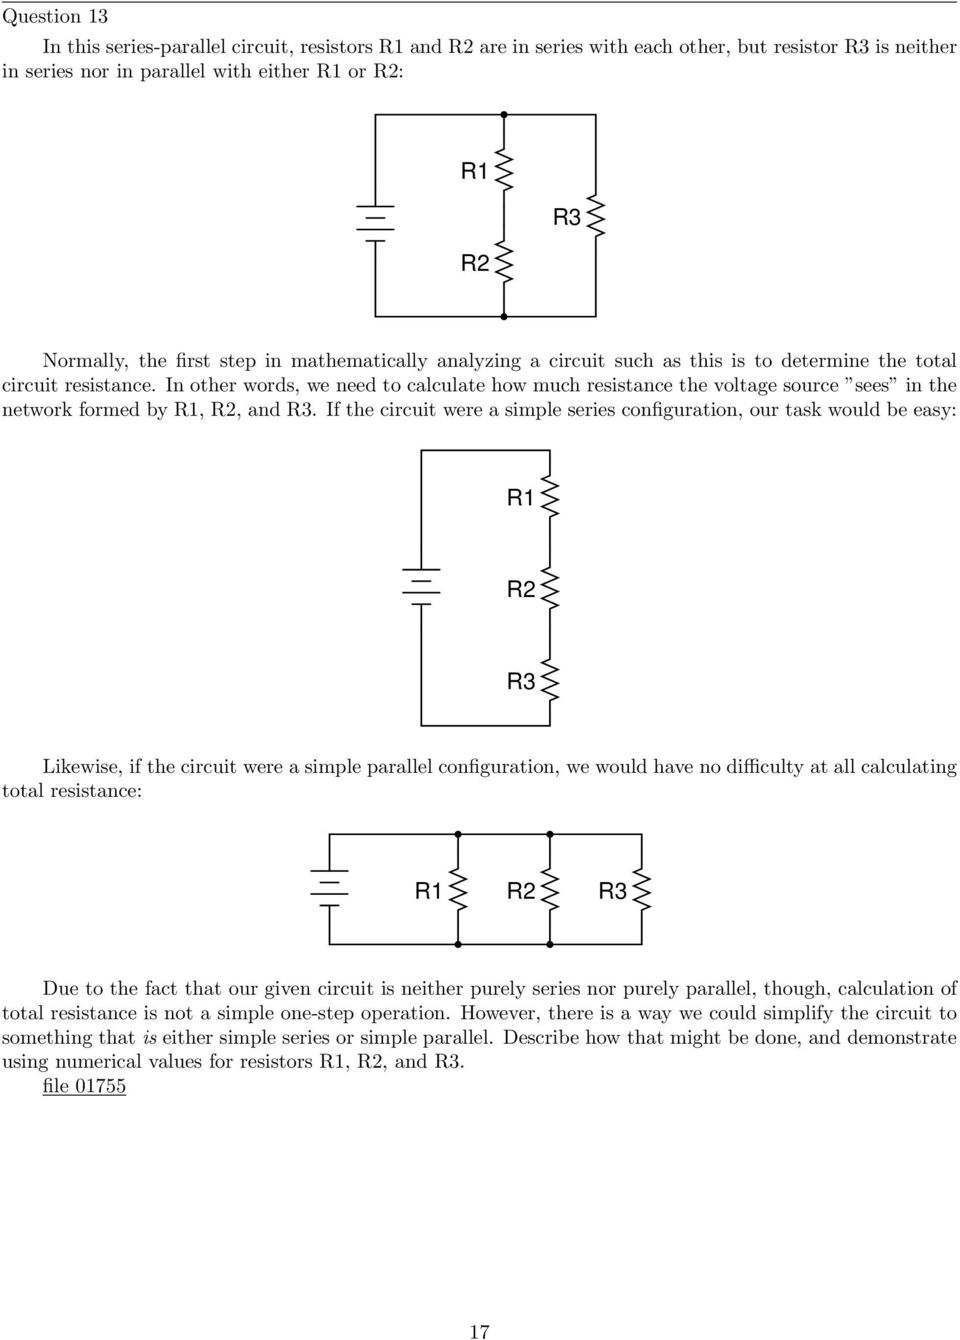 Series Parallel Dc Circuits Pdf Circuit With A Voltage Source Such As Battery Or In This Other Words We Need To Calculate How Much Resistance The Sees